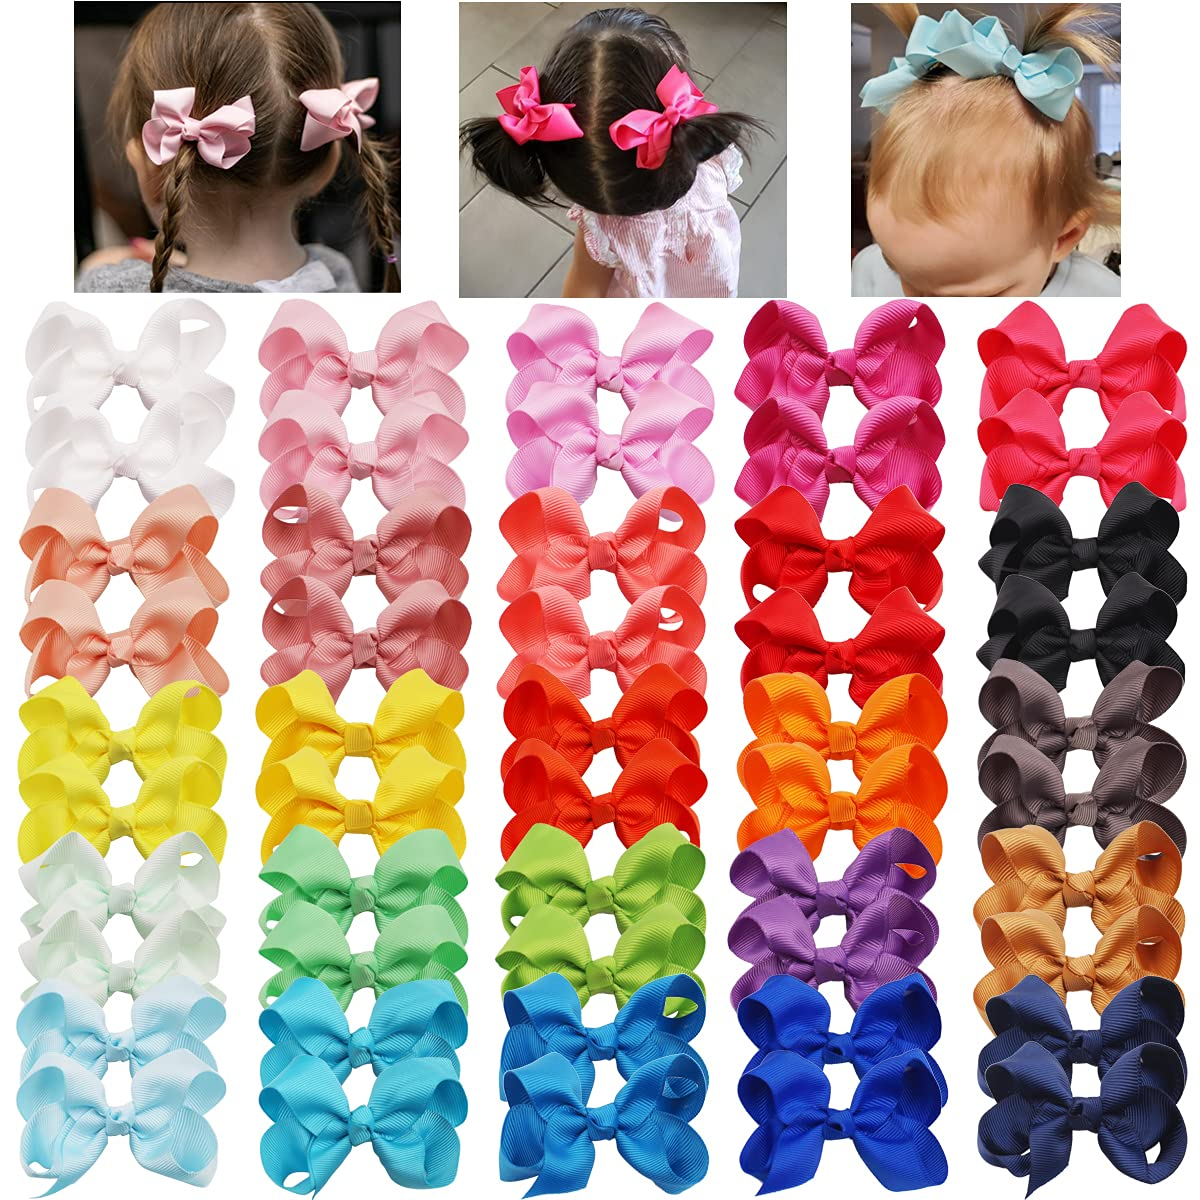 50PCS Max 58% OFF 25 Inventory cleanup selling sale Pairs Baby Hair Clips Grosgrain 3 Inch Ribbon Bow